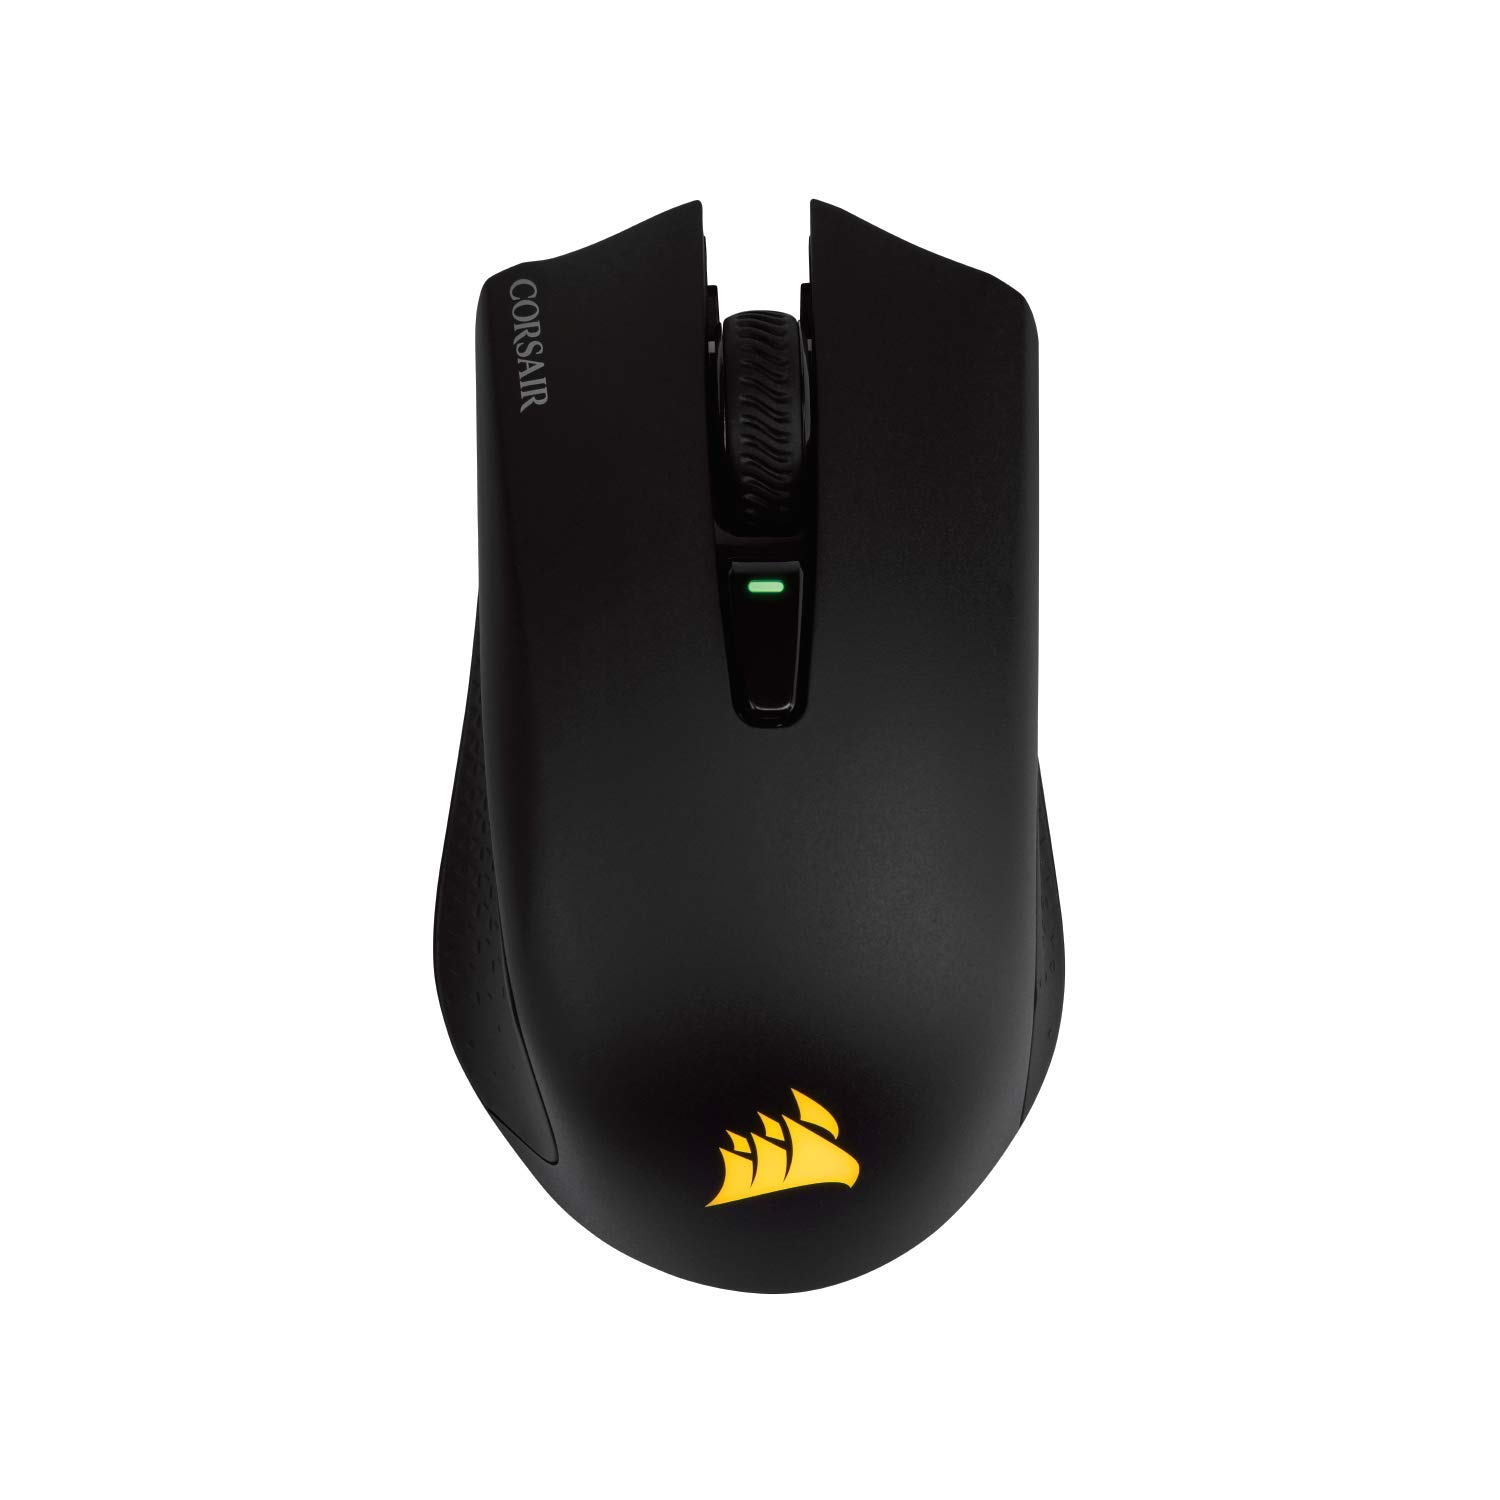 CORSAIR Harpoon RGB Wireless - Wireless Rechargeable Gaming Mouse - 10,000 DPI Optical Sensor by Corsair